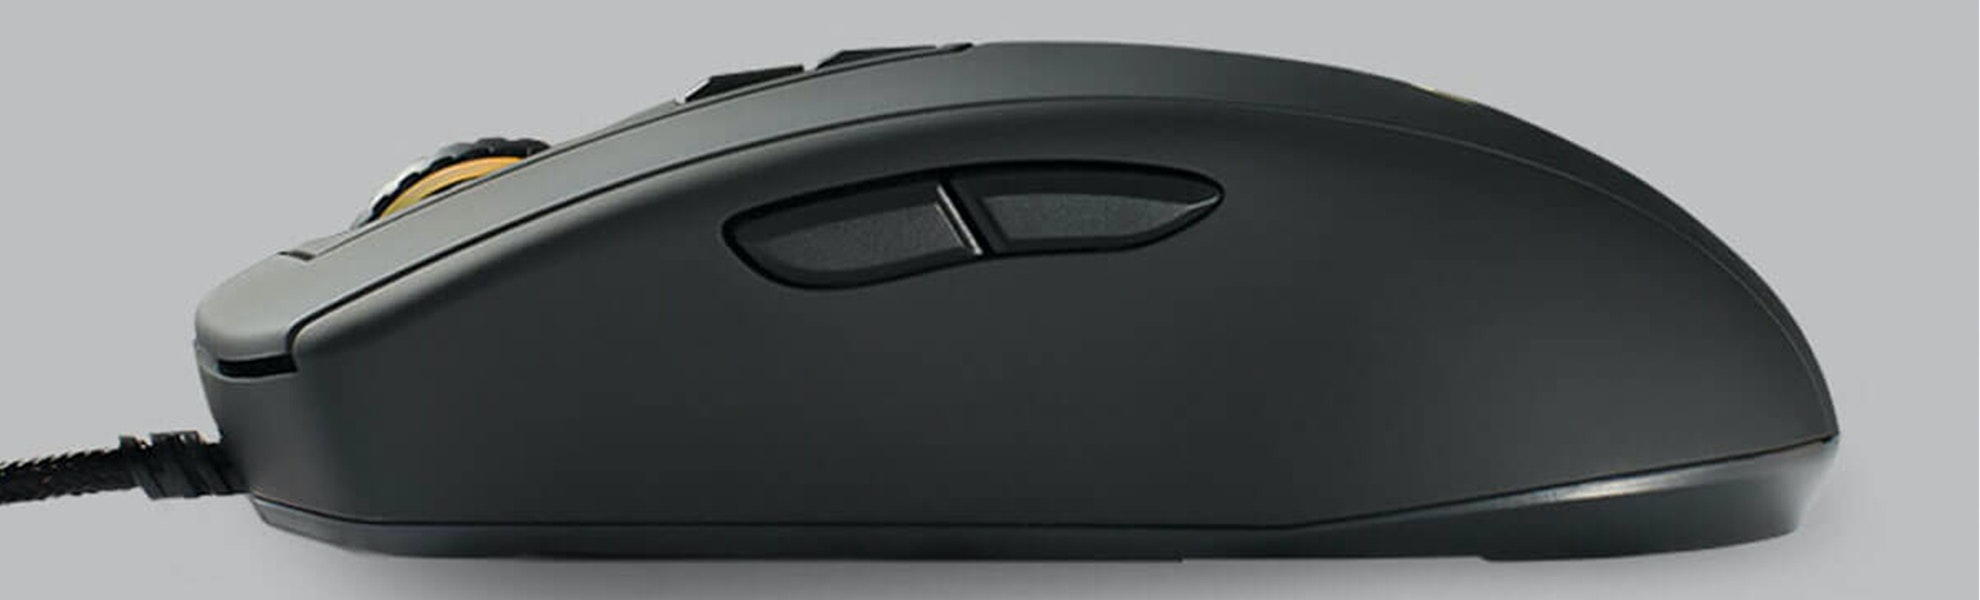 Mionix Avior 7000 Series Mouse